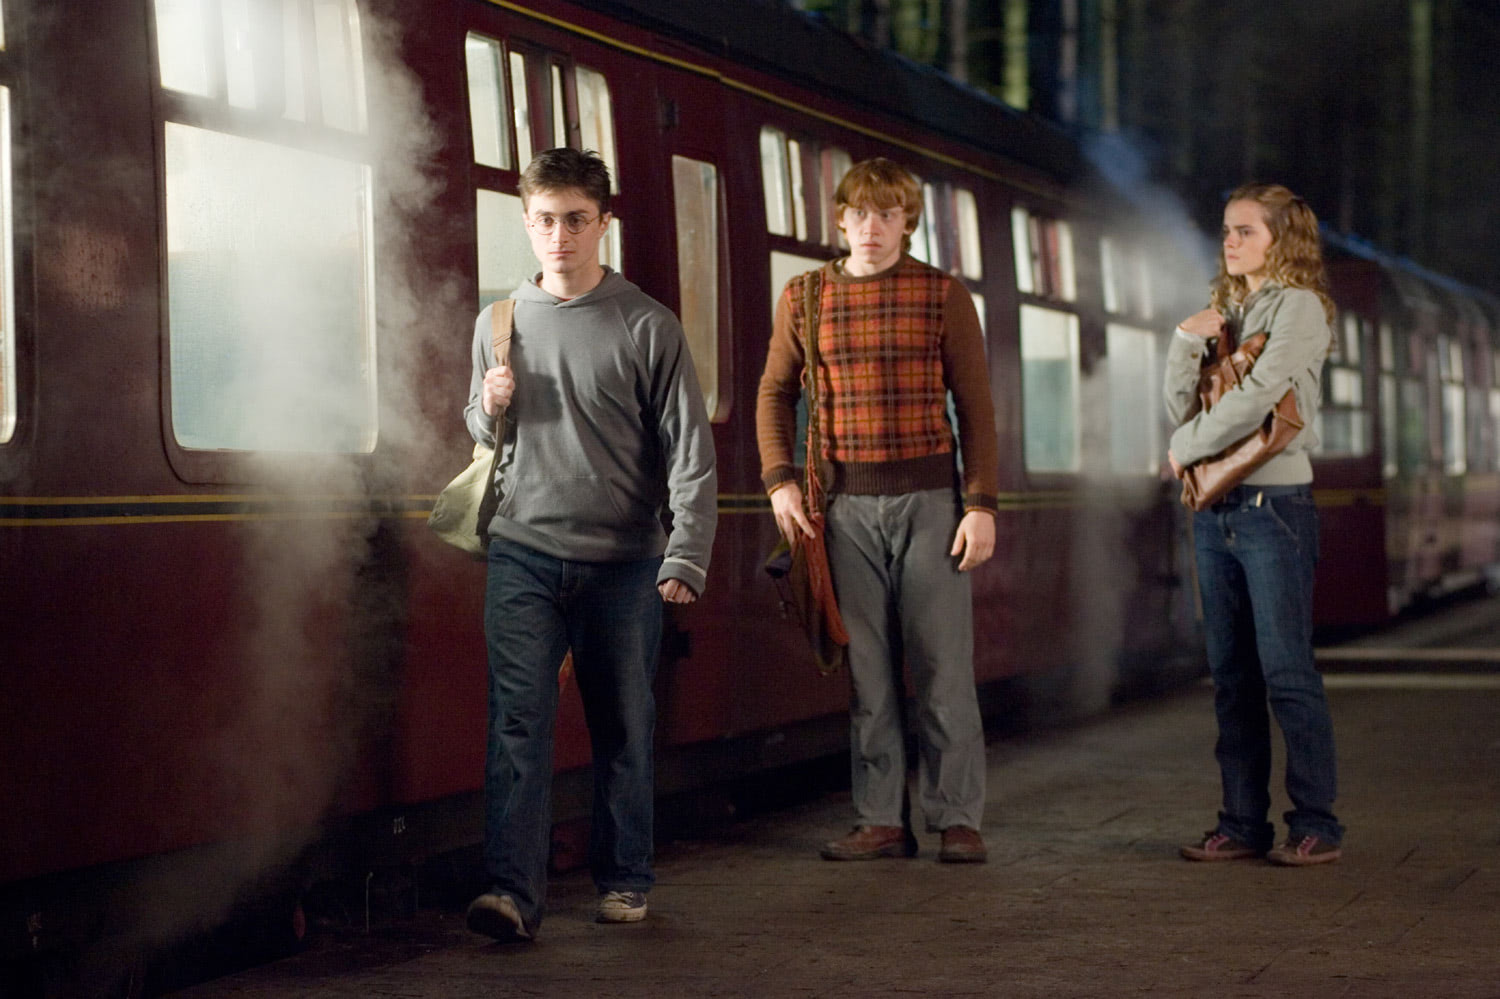 Harry, Ron and Hermione by the Hogwarts Express